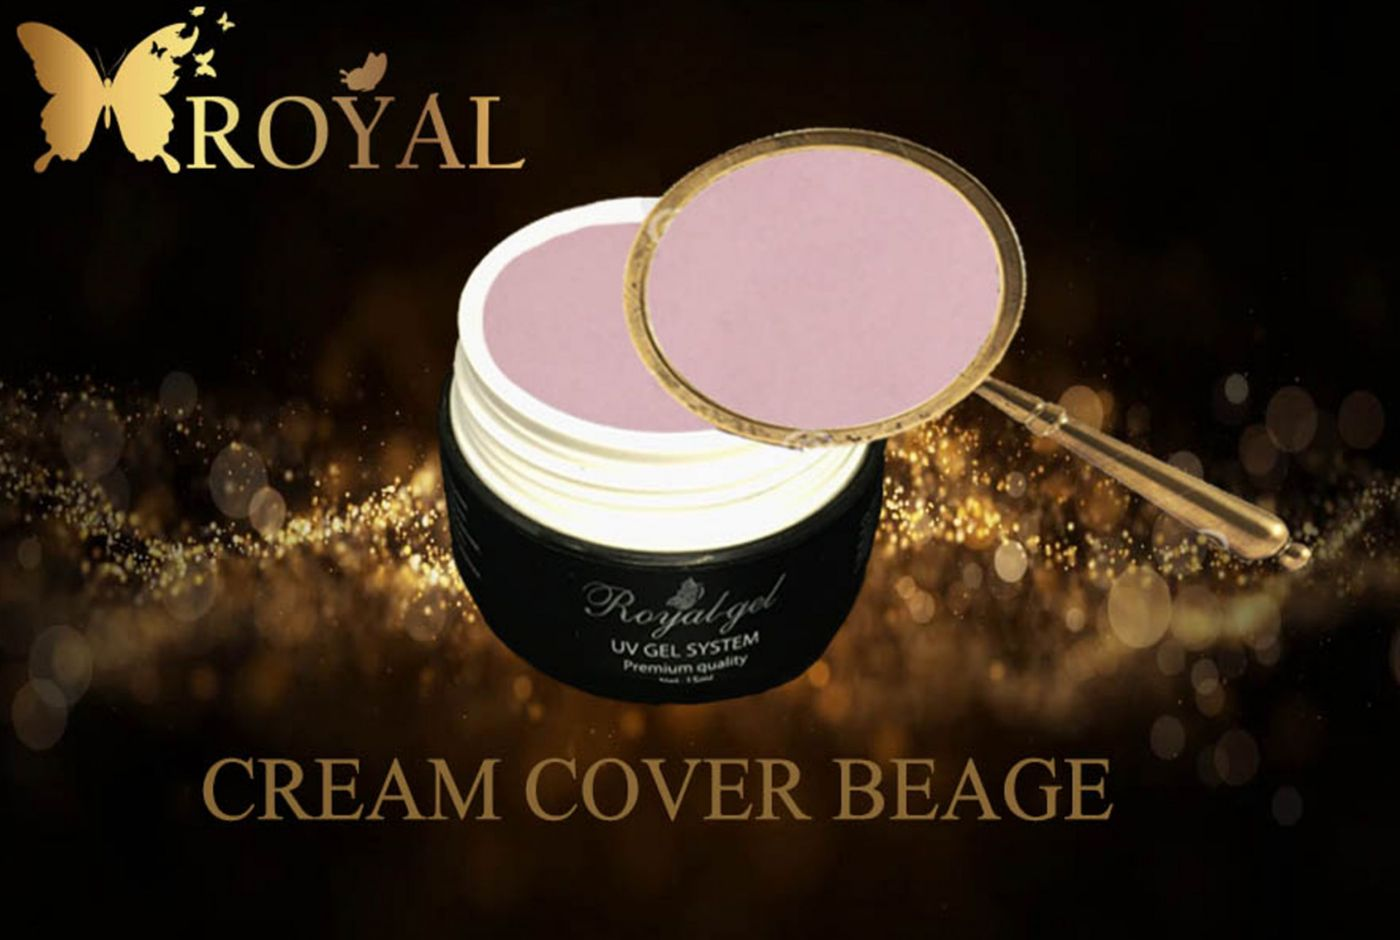 CREAM COVER BEAGE ROYAL GEL камуфляж карамельно розовый